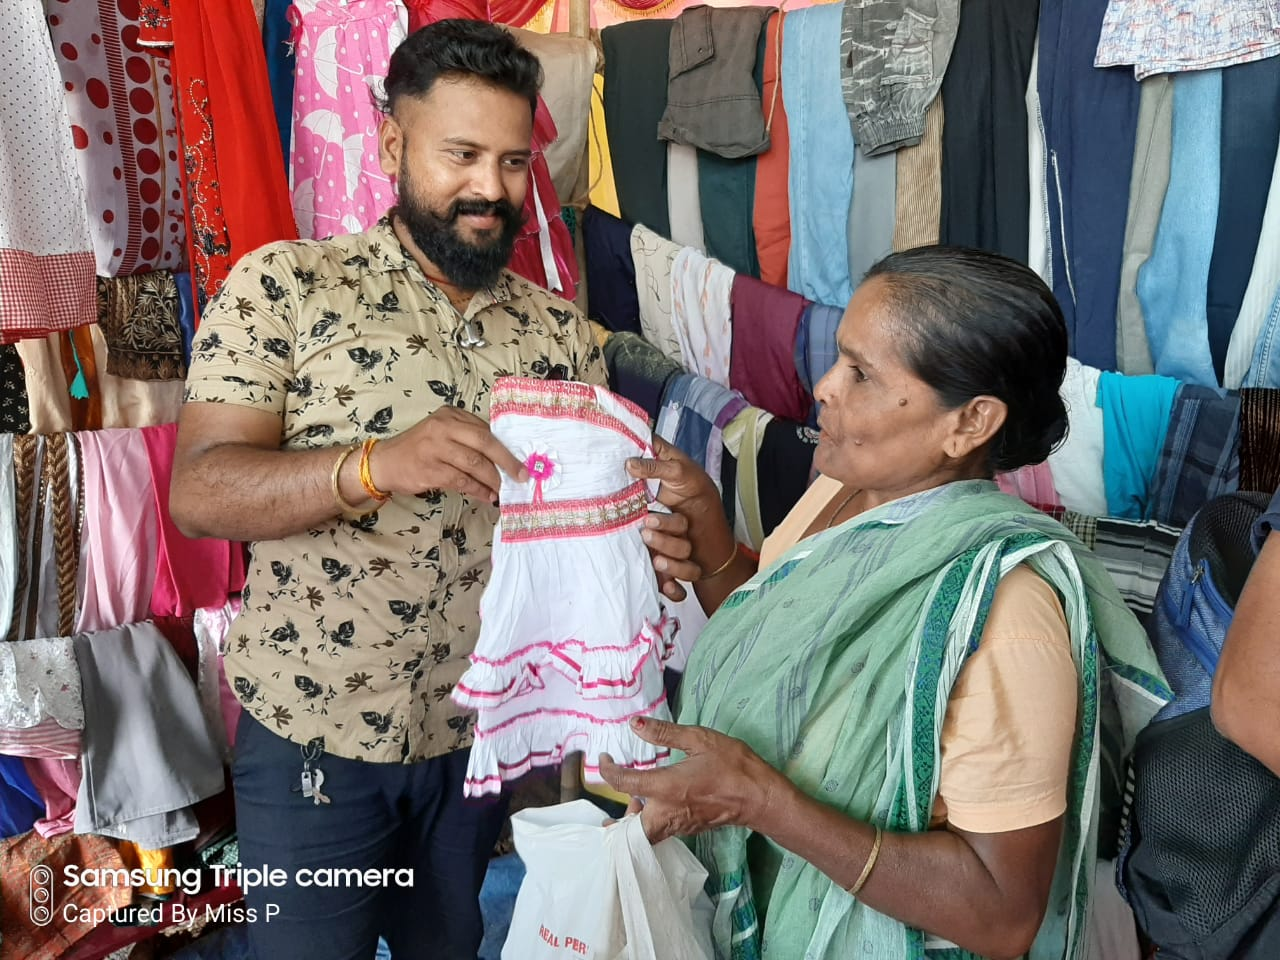 Distributing free clothes. (Source: Helping Hands)